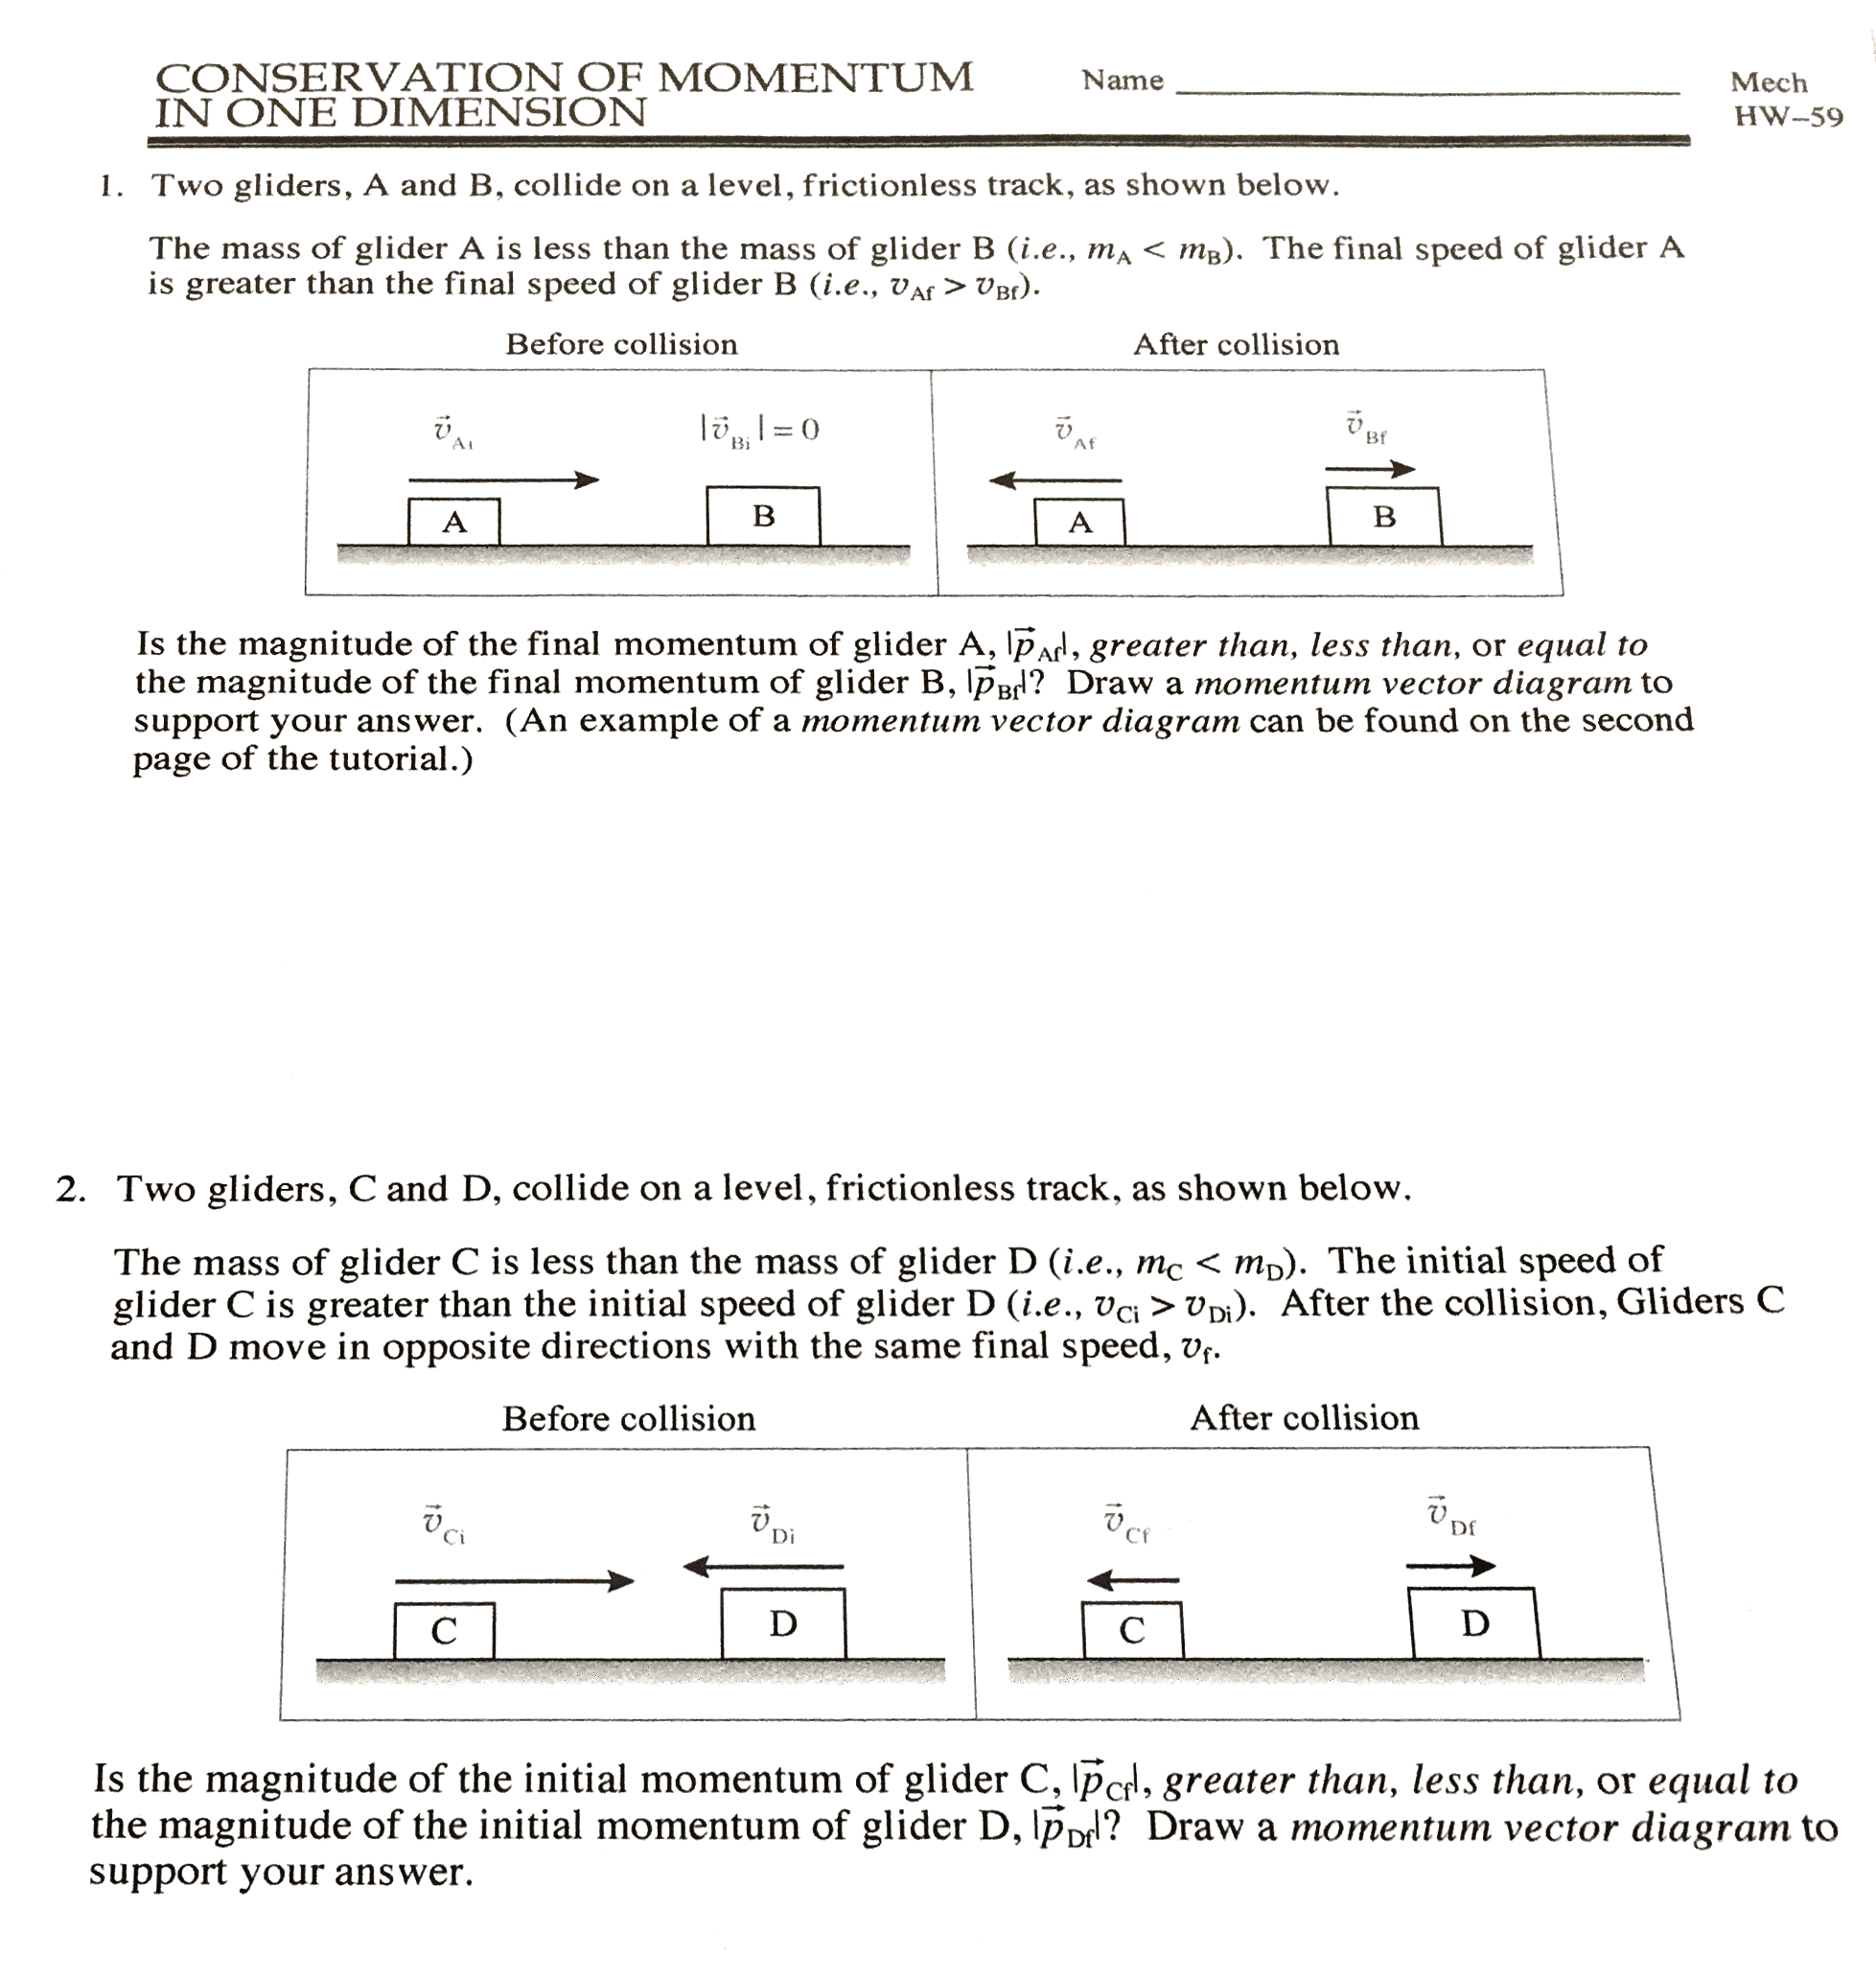 Physics 30 Worksheet 4 Conservation Of Momentum 2